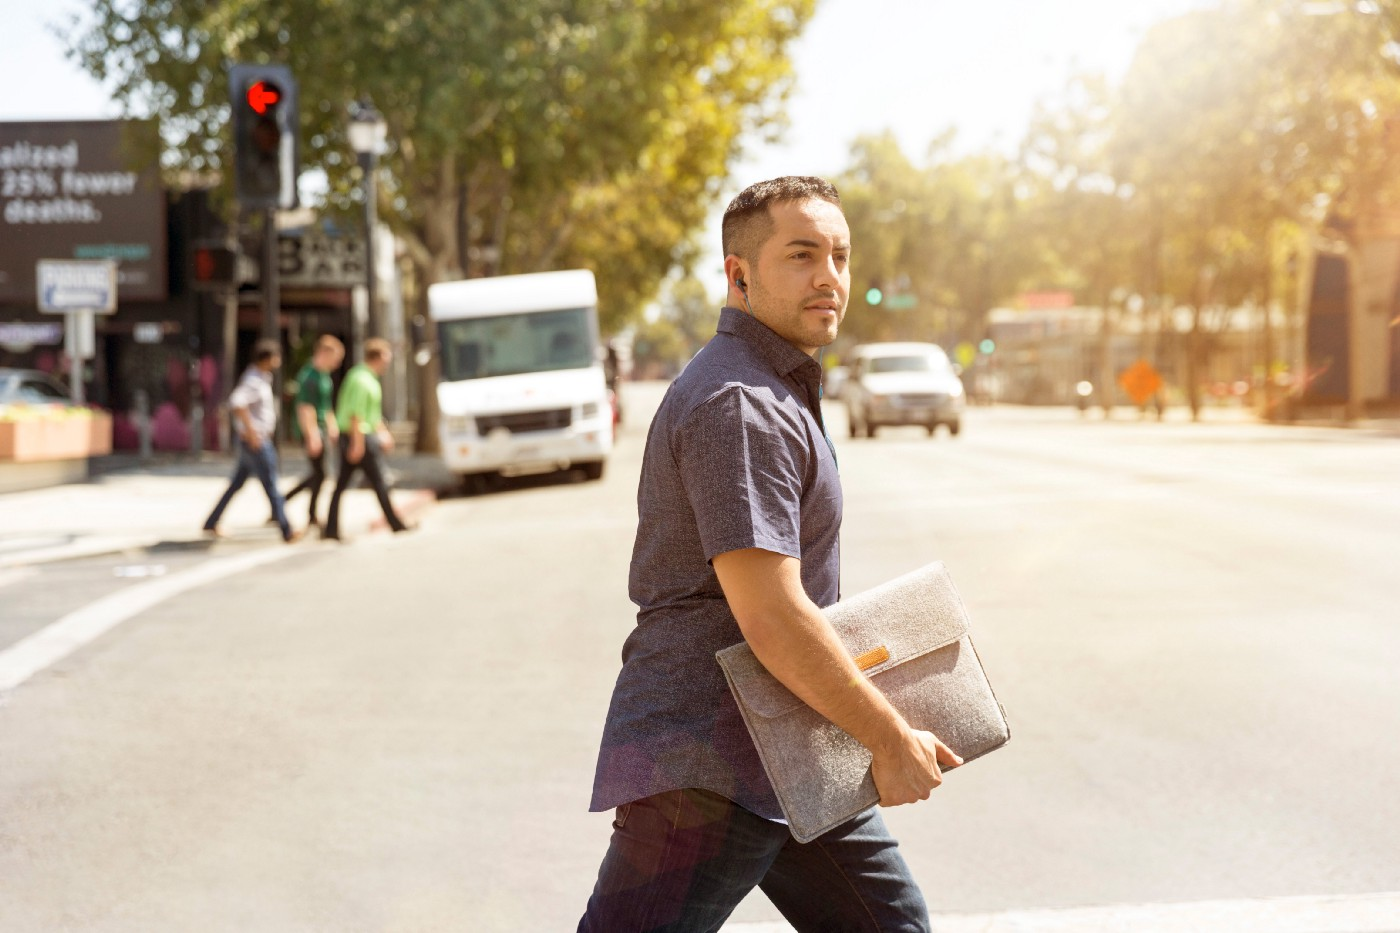 A Guy crossing the road in lost in thoughts, probably looking for a job